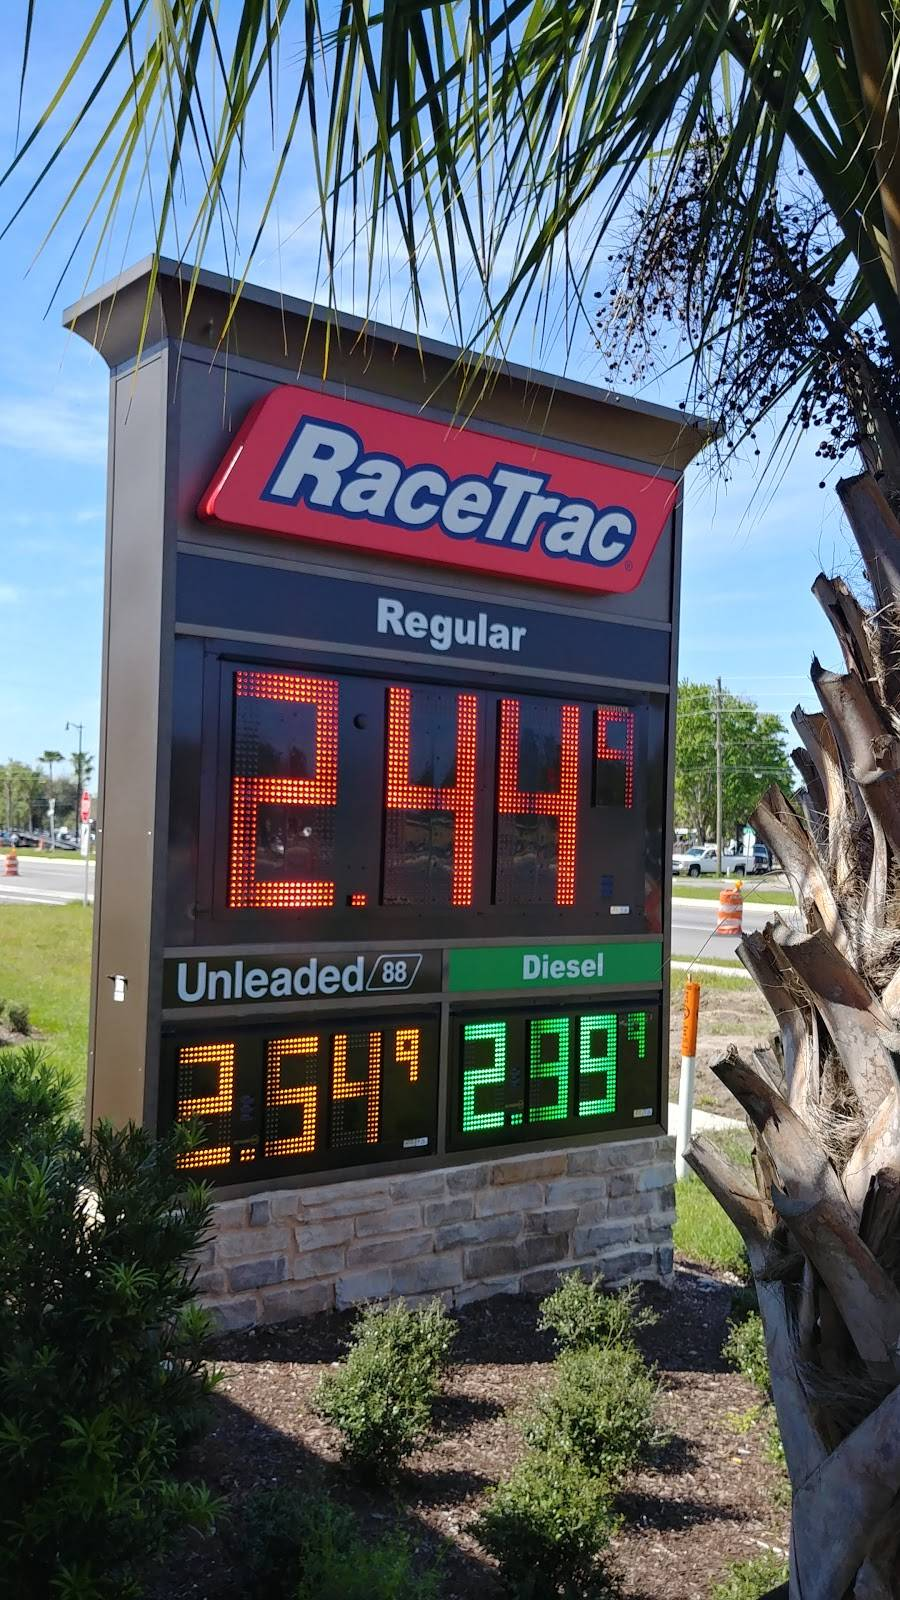 RaceTrac | bakery | 3271 North 17th and, US-92, Longwood, FL 32750, USA | 4073214406 OR +1 407-321-4406